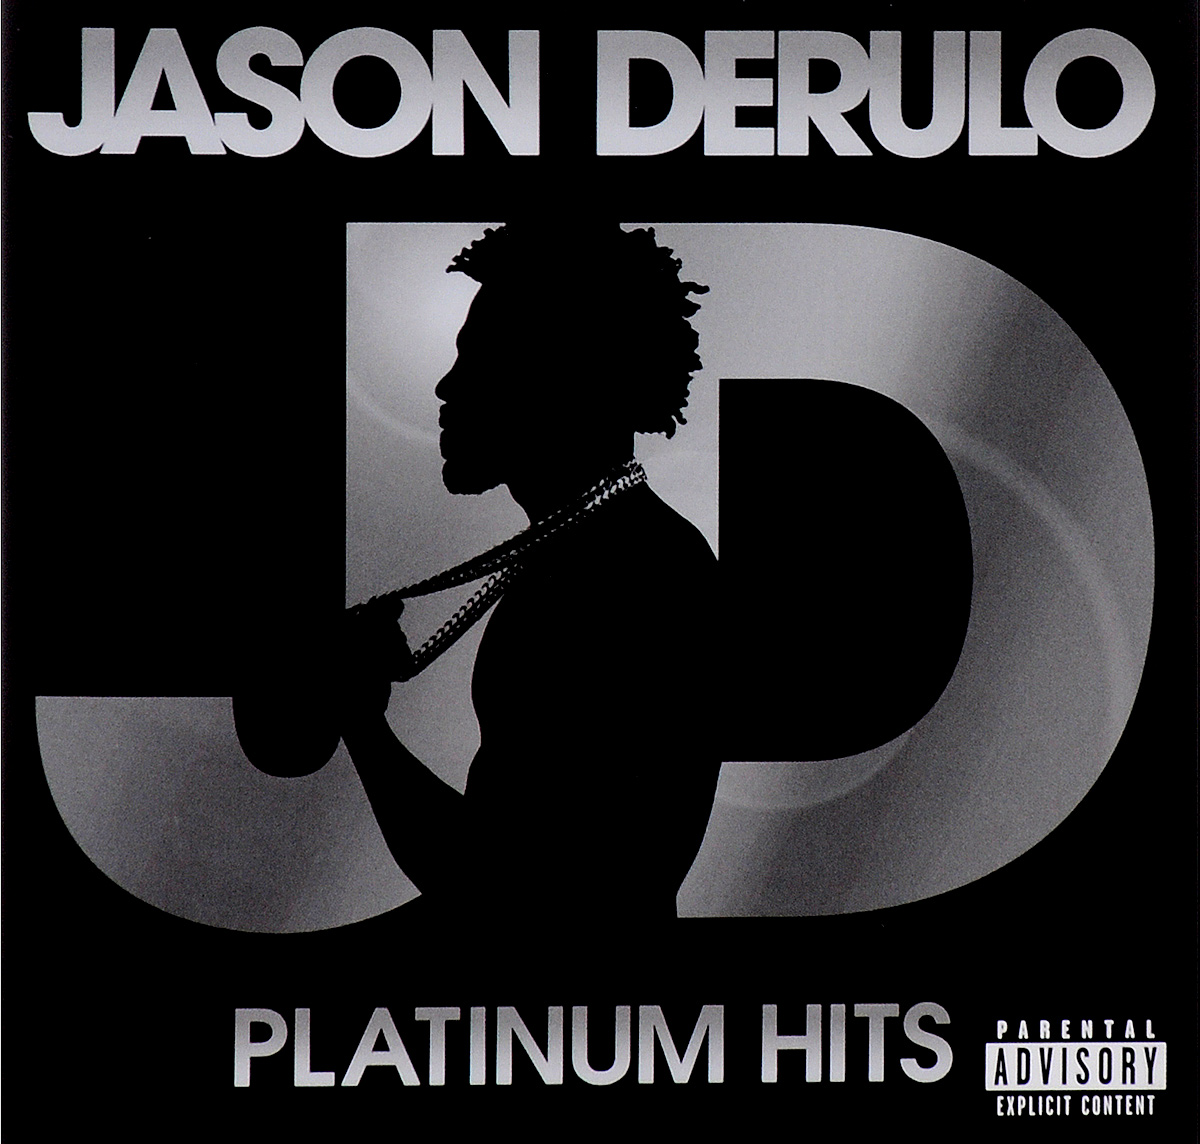 Jason Derulo. Platinum Hits